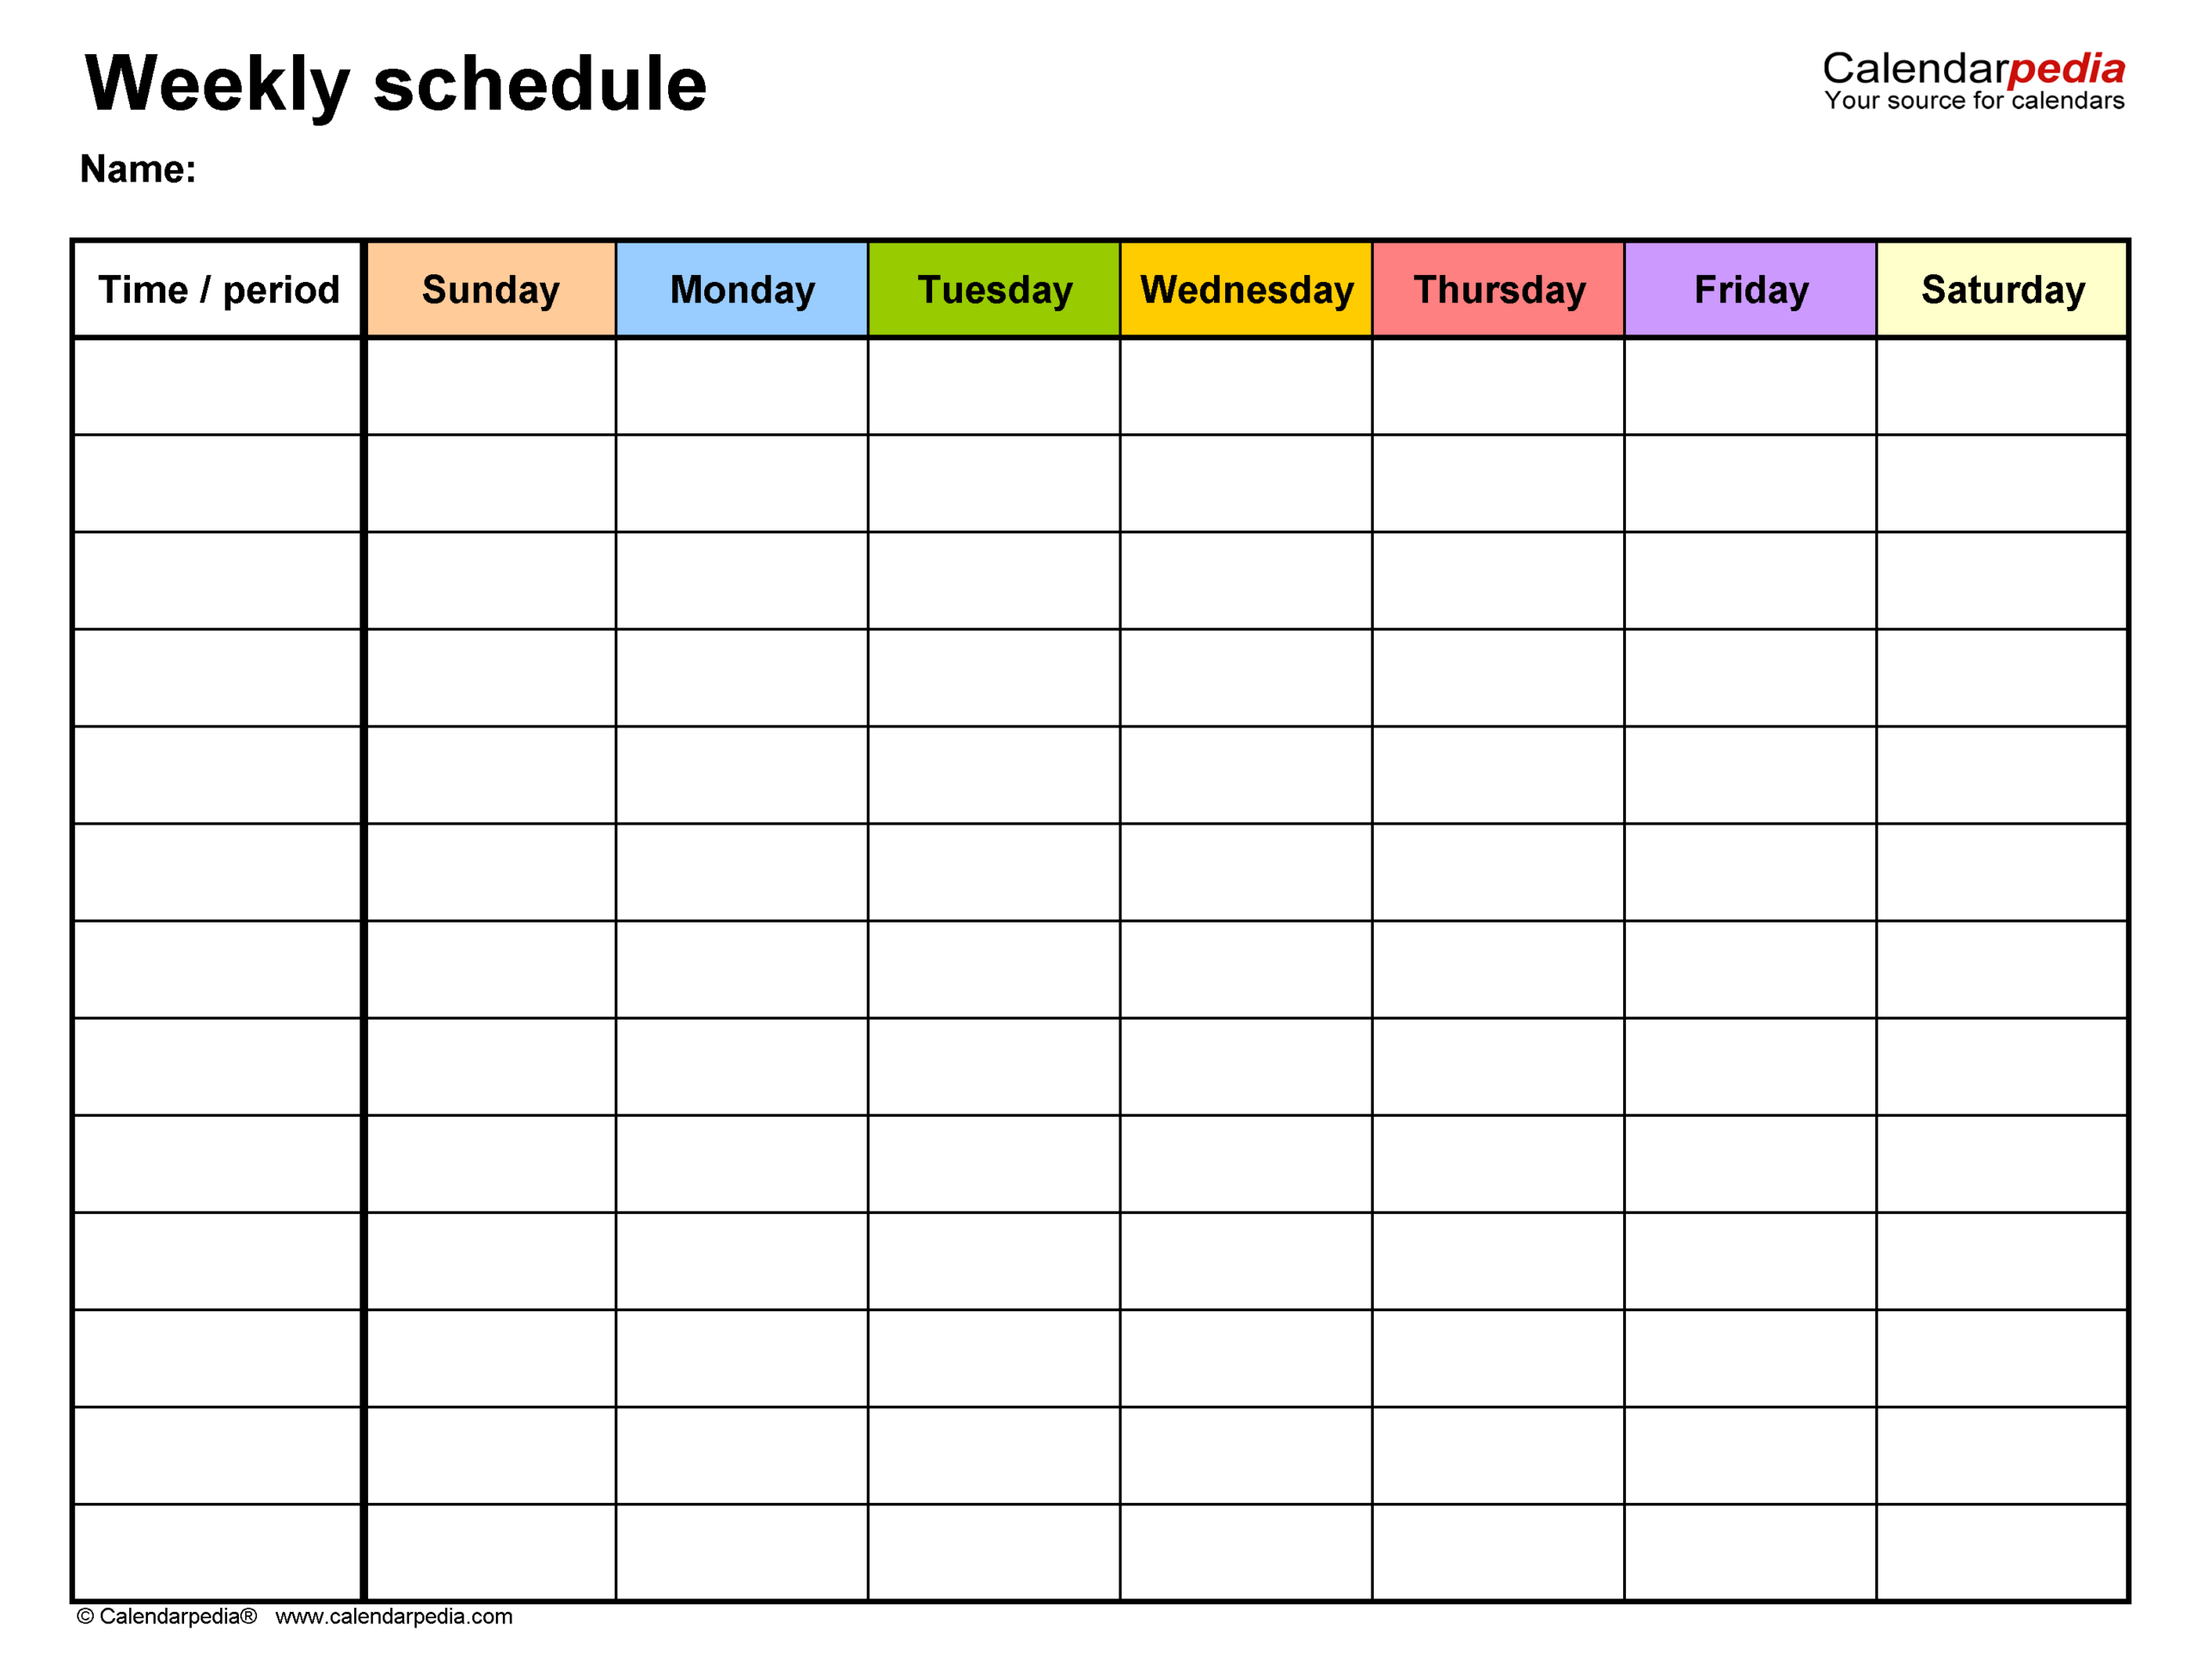 Free Weekly Schedule Templates For Word  18 Templates inside Monday Thru Friday Schedule Template